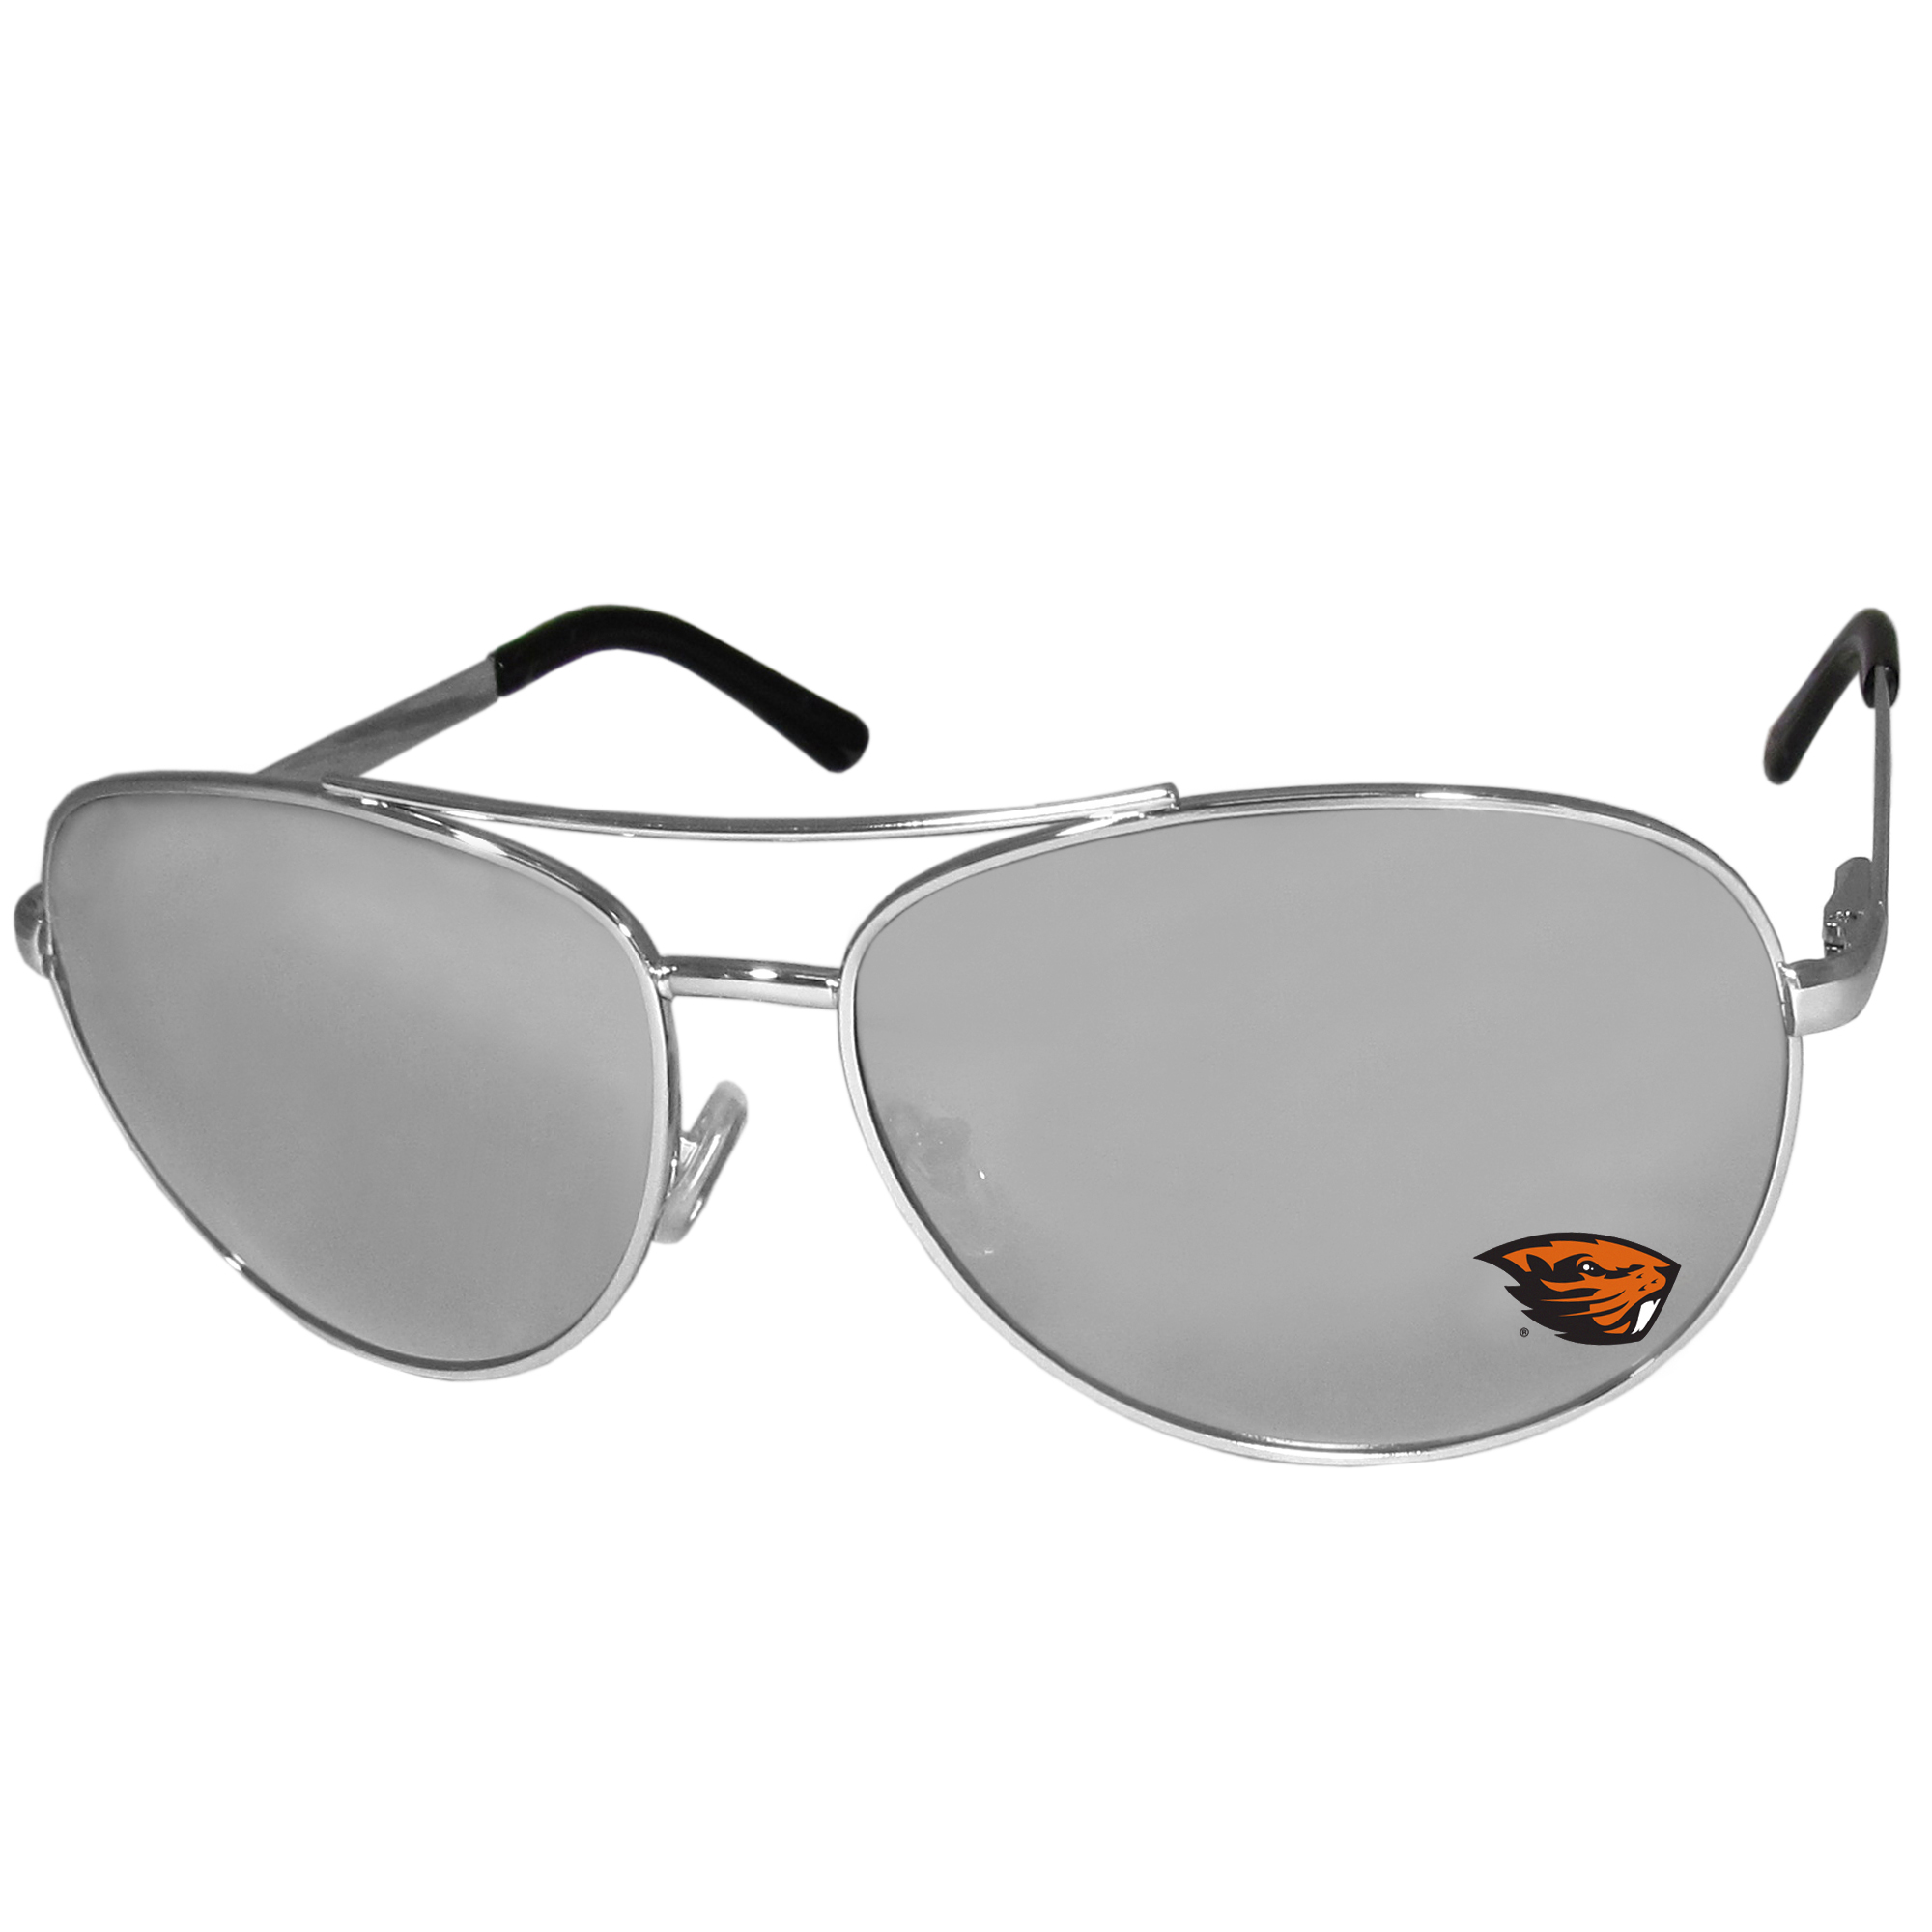 Oregon St. Beavers Aviator Sunglasses - Our aviator sunglasses have the iconic aviator style with mirrored lenses and metal frames. The glasses feature a silk screened Oregon St. Beavers logo in the corner of the lense. 100% UVA/UVB protection.